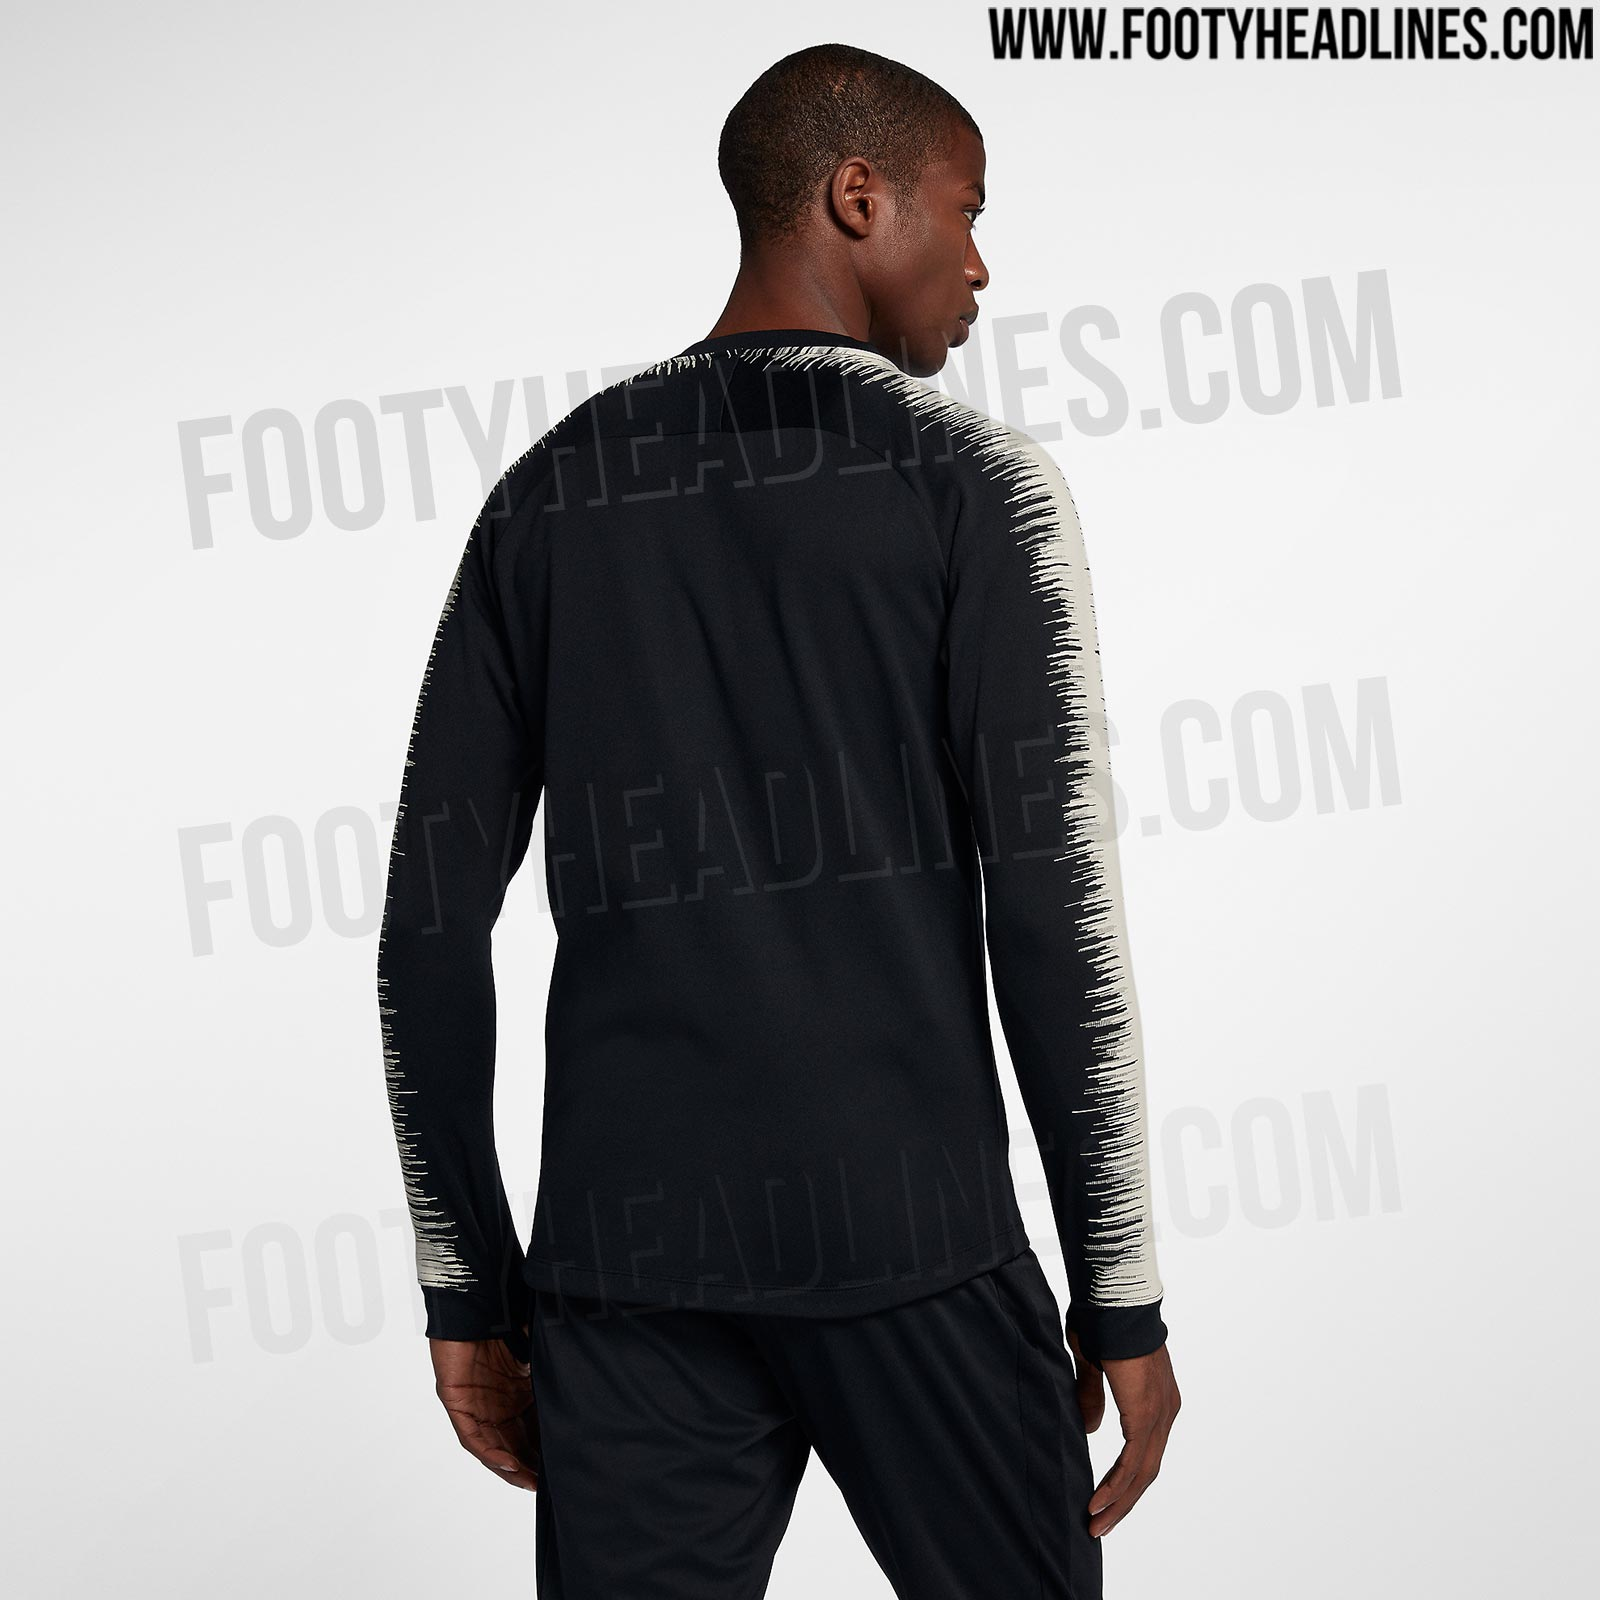 ea2985cee5a Nike Paris Saint-Germain 18-19 Away Kit Jackets Leaked